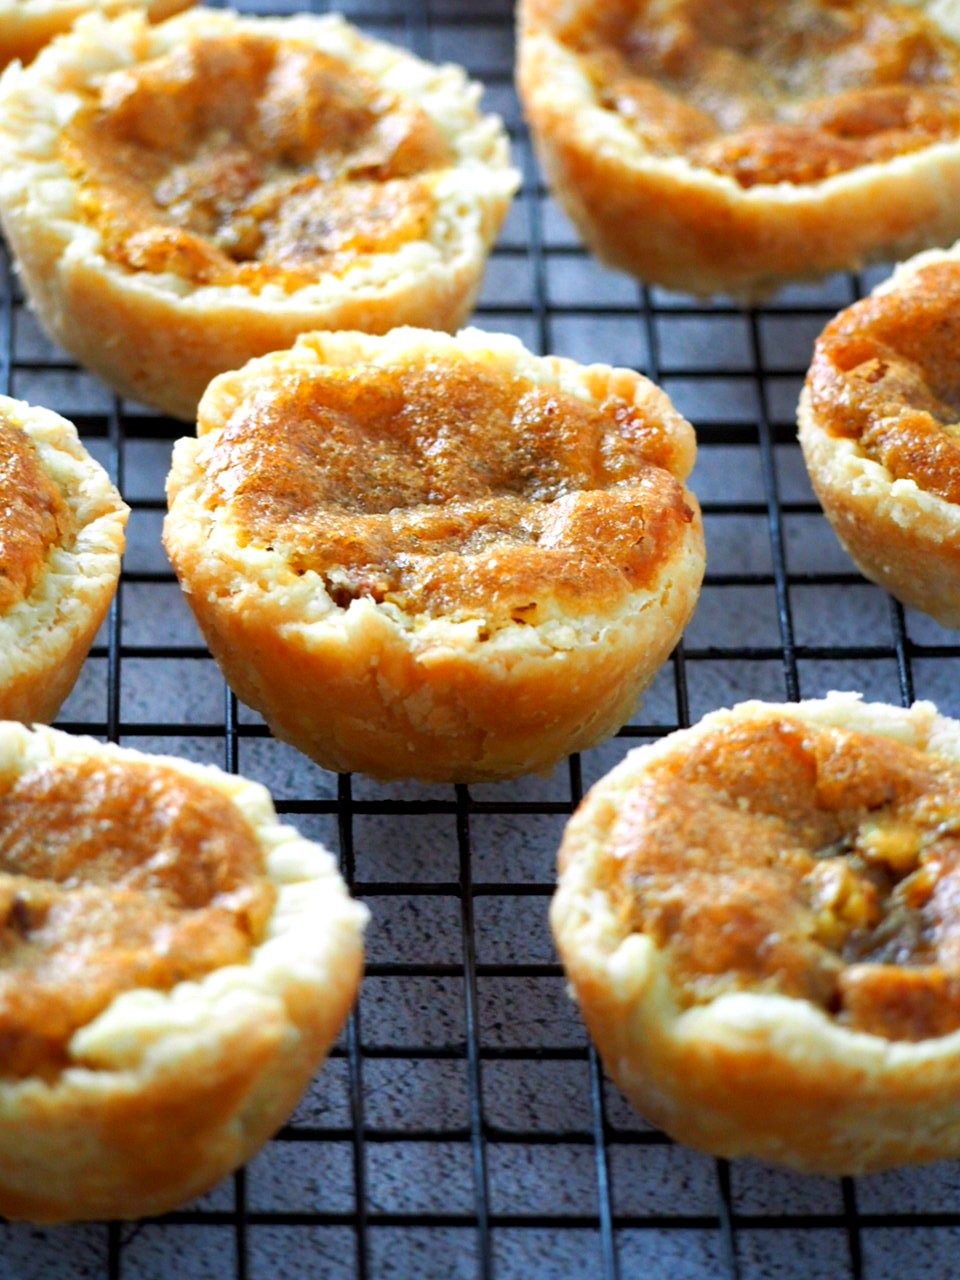 Closer view of butter tarts on a wire rack.